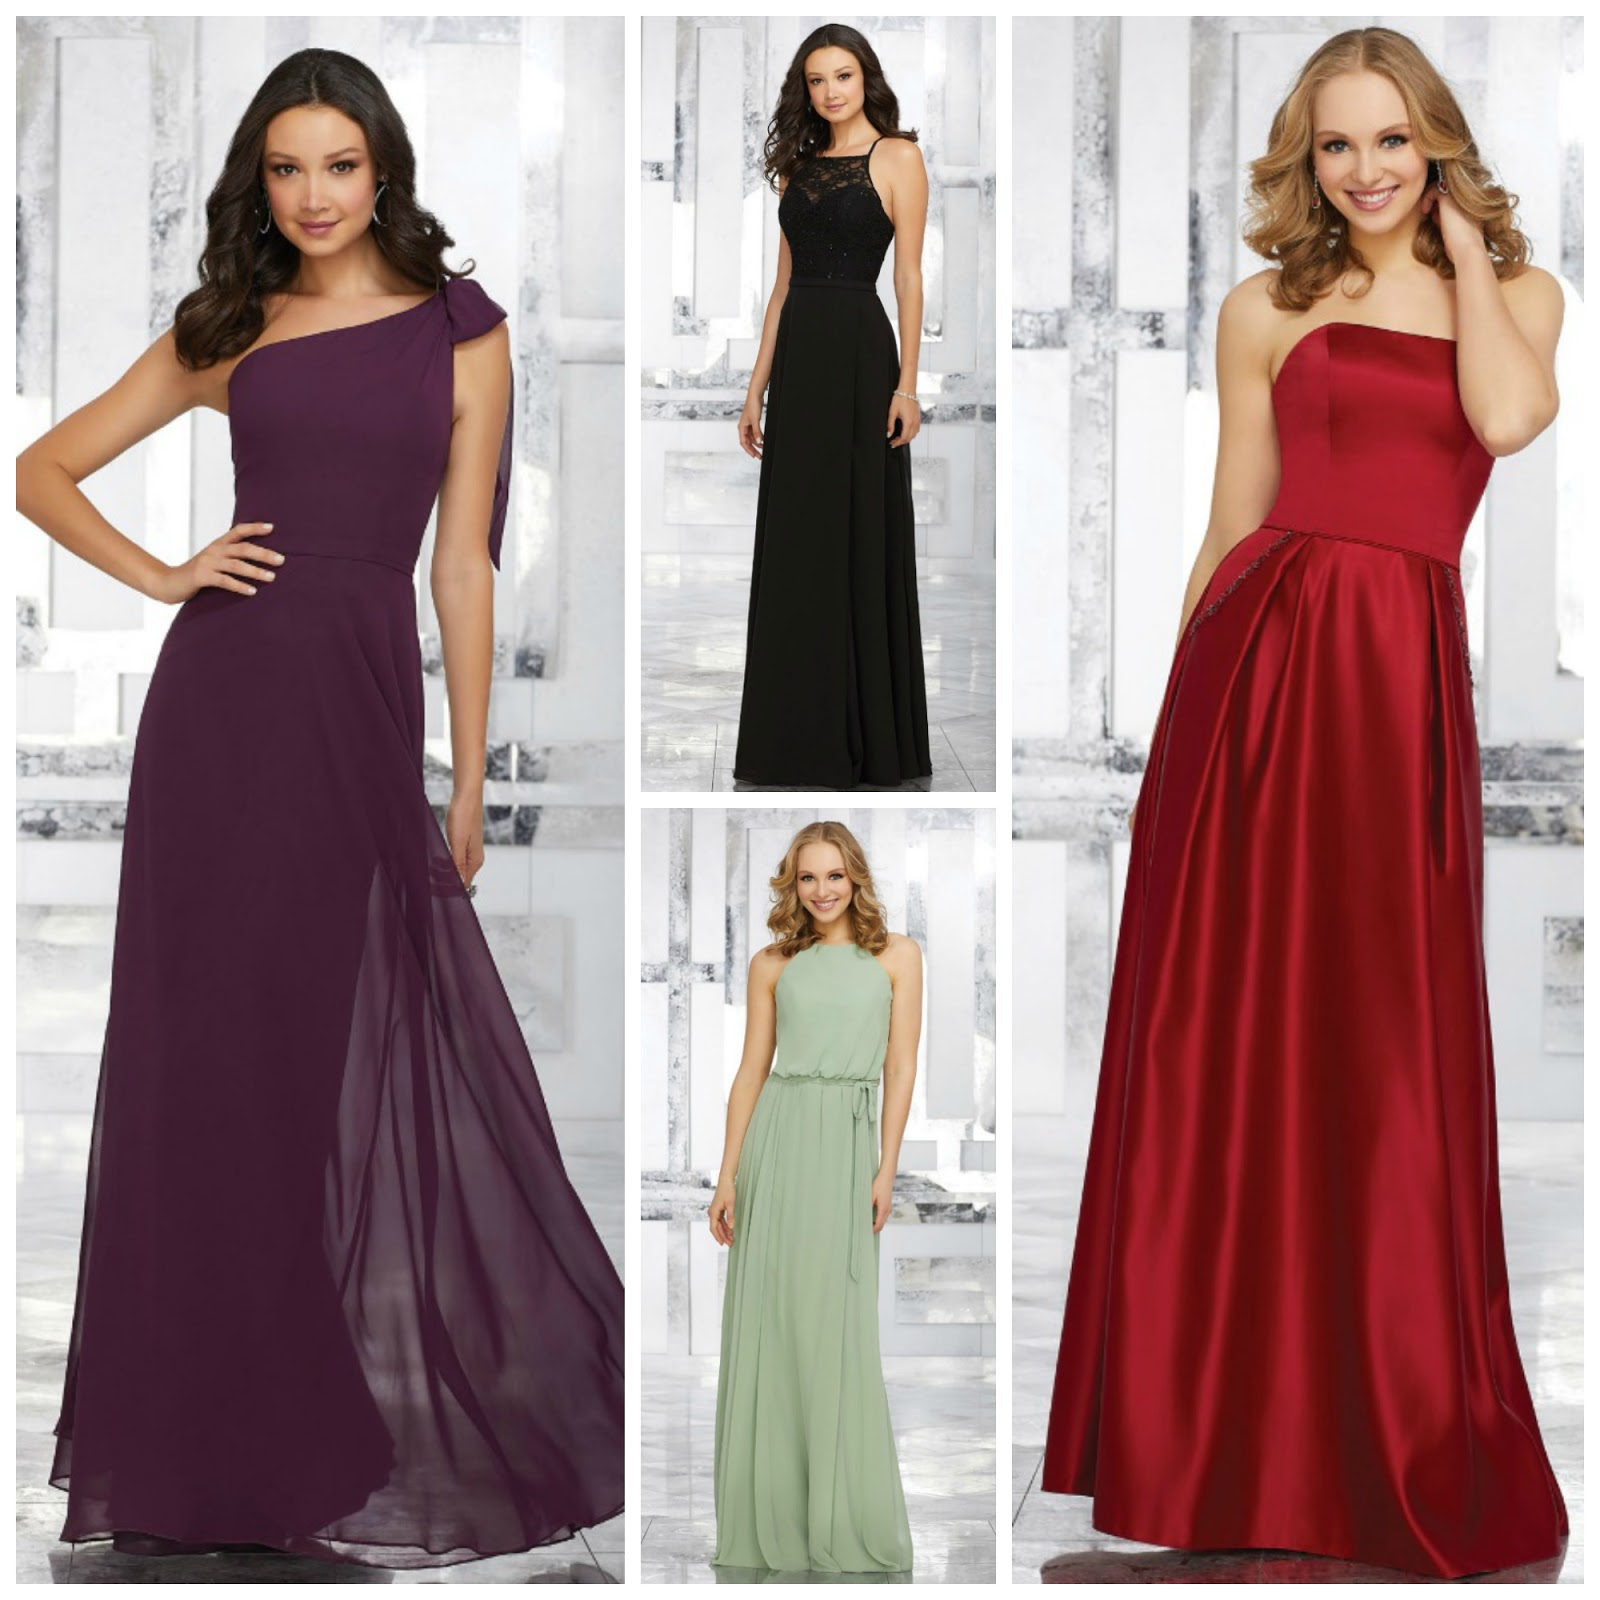 Angelus bridal and formal how to shop for bridesmaid dresses you start shopping early its never too early to begin the bridesmaid gown search start out by flipping through wedding magazines together or sharing your ombrellifo Image collections